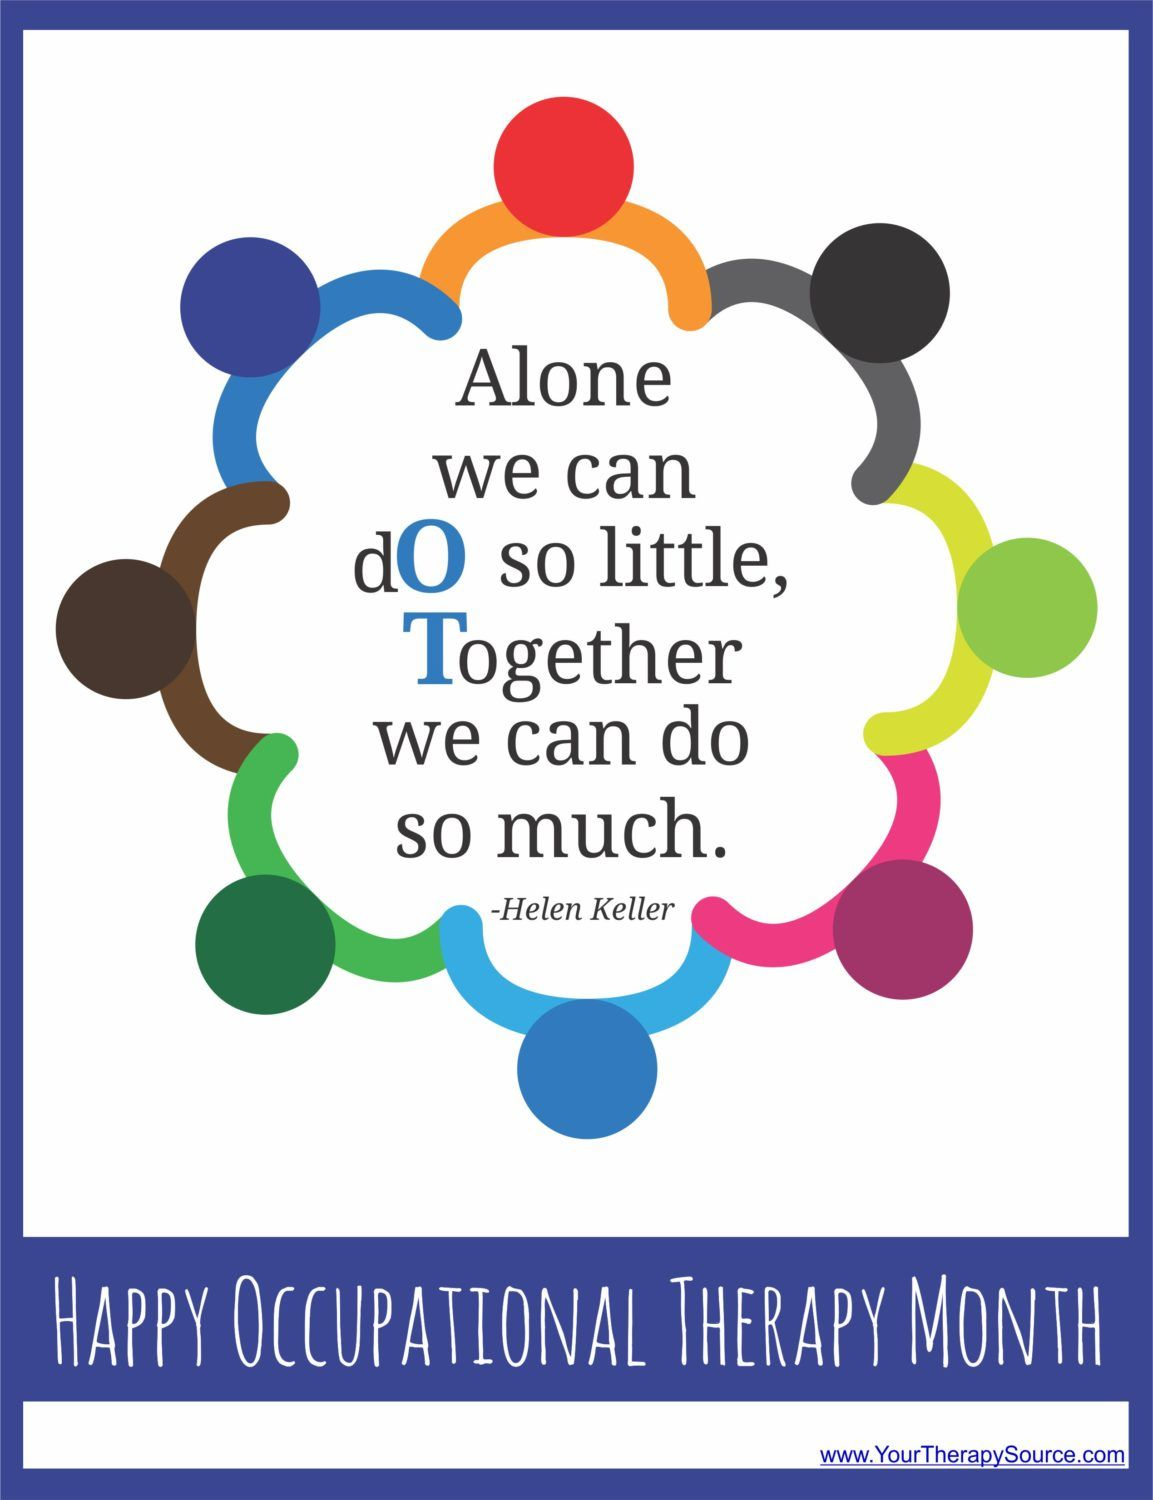 Happy Occupational Therapy Month Free Posters To Print